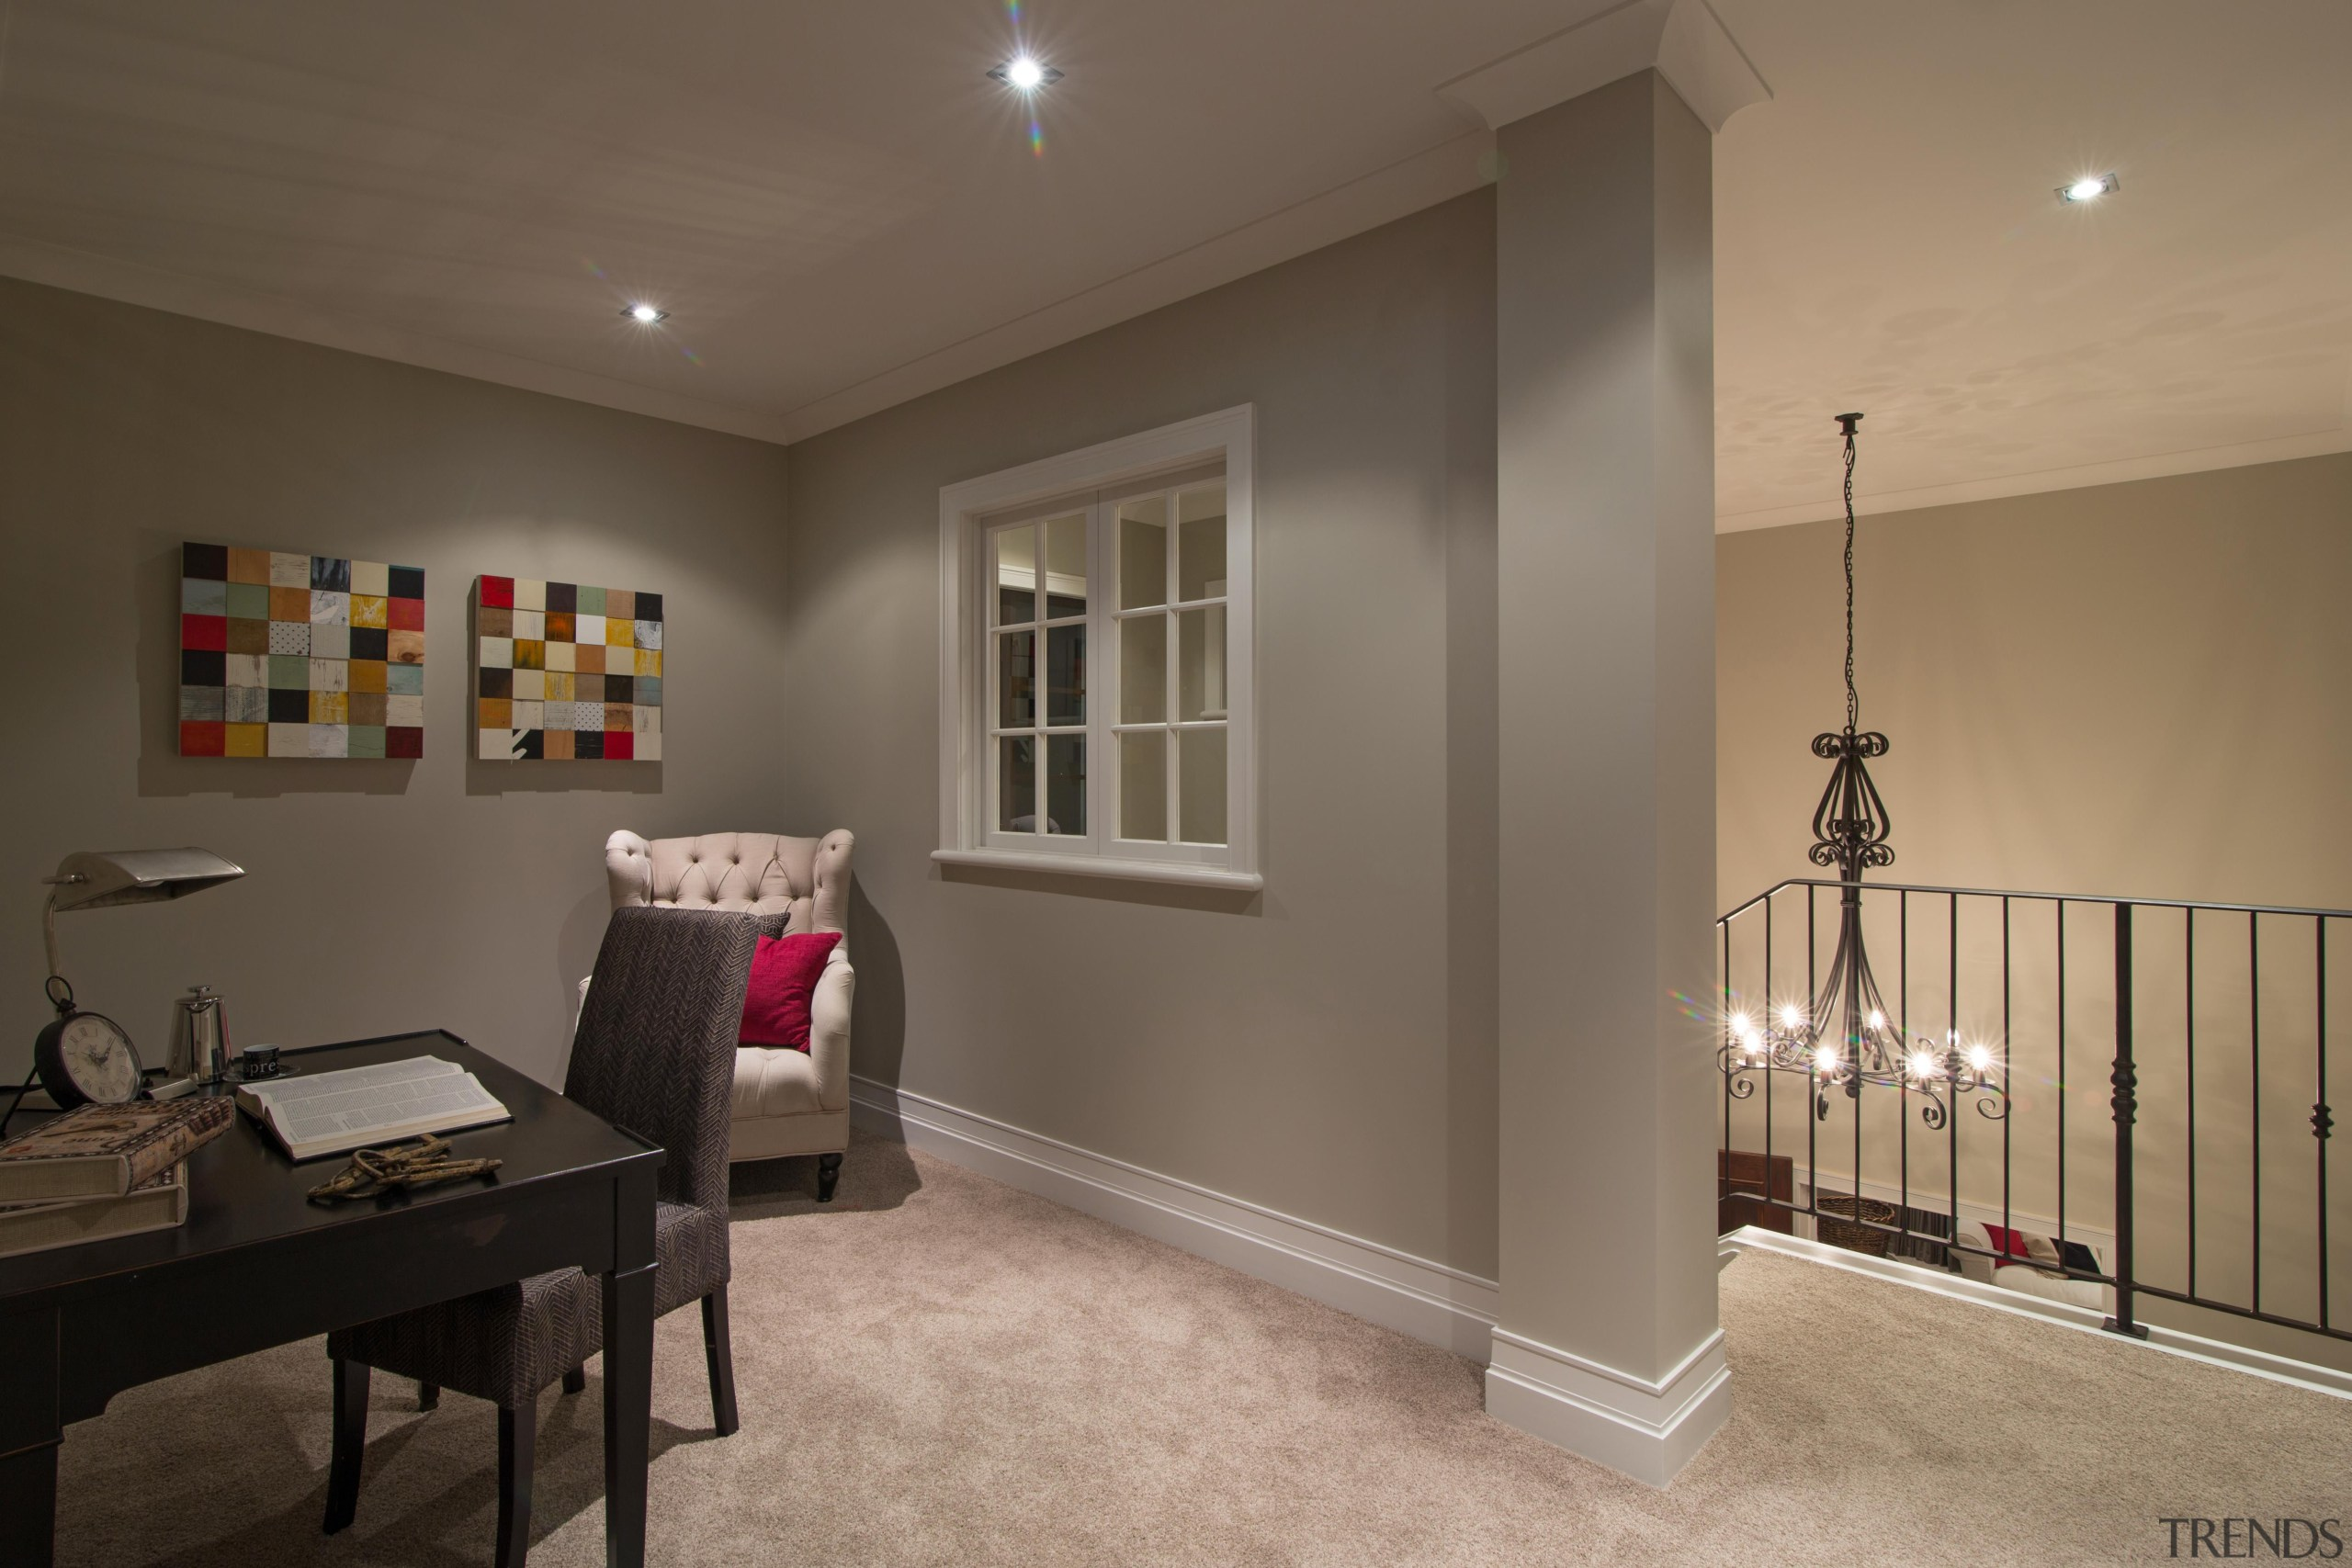 Img 0738 - ceiling | floor | flooring ceiling, floor, flooring, home, interior design, living room, property, real estate, room, wall, gray